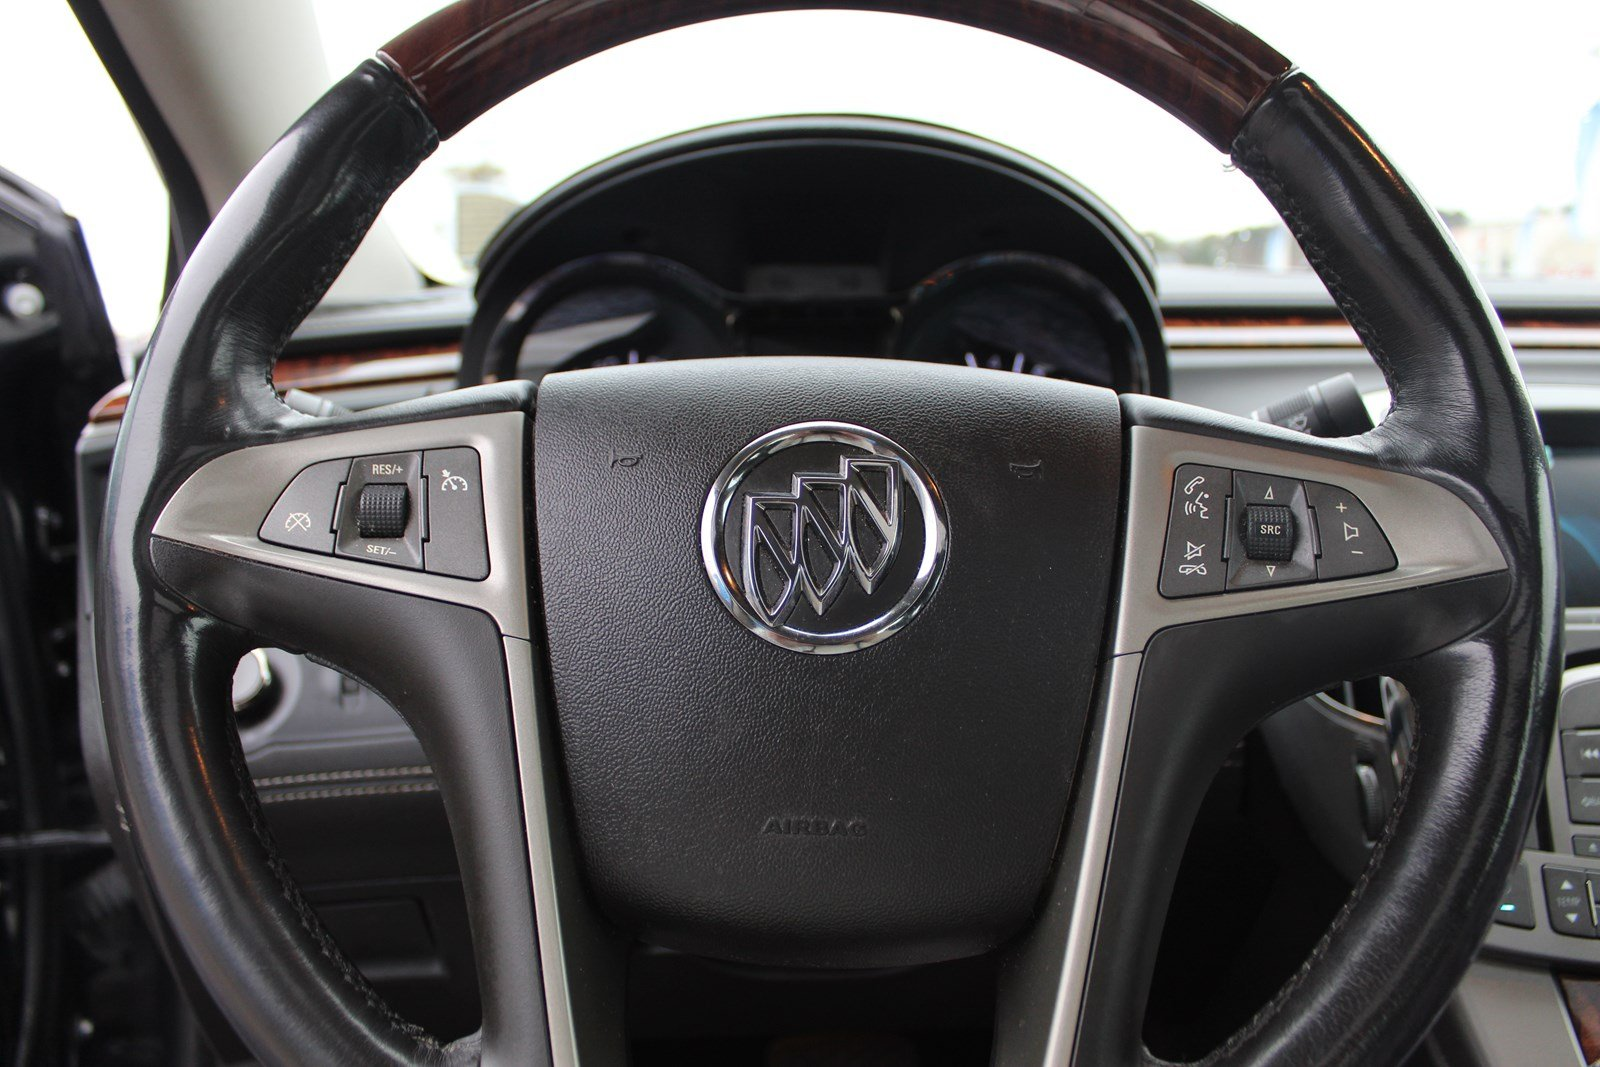 Pre-Owned 2013 Buick LaCrosse Touring Group